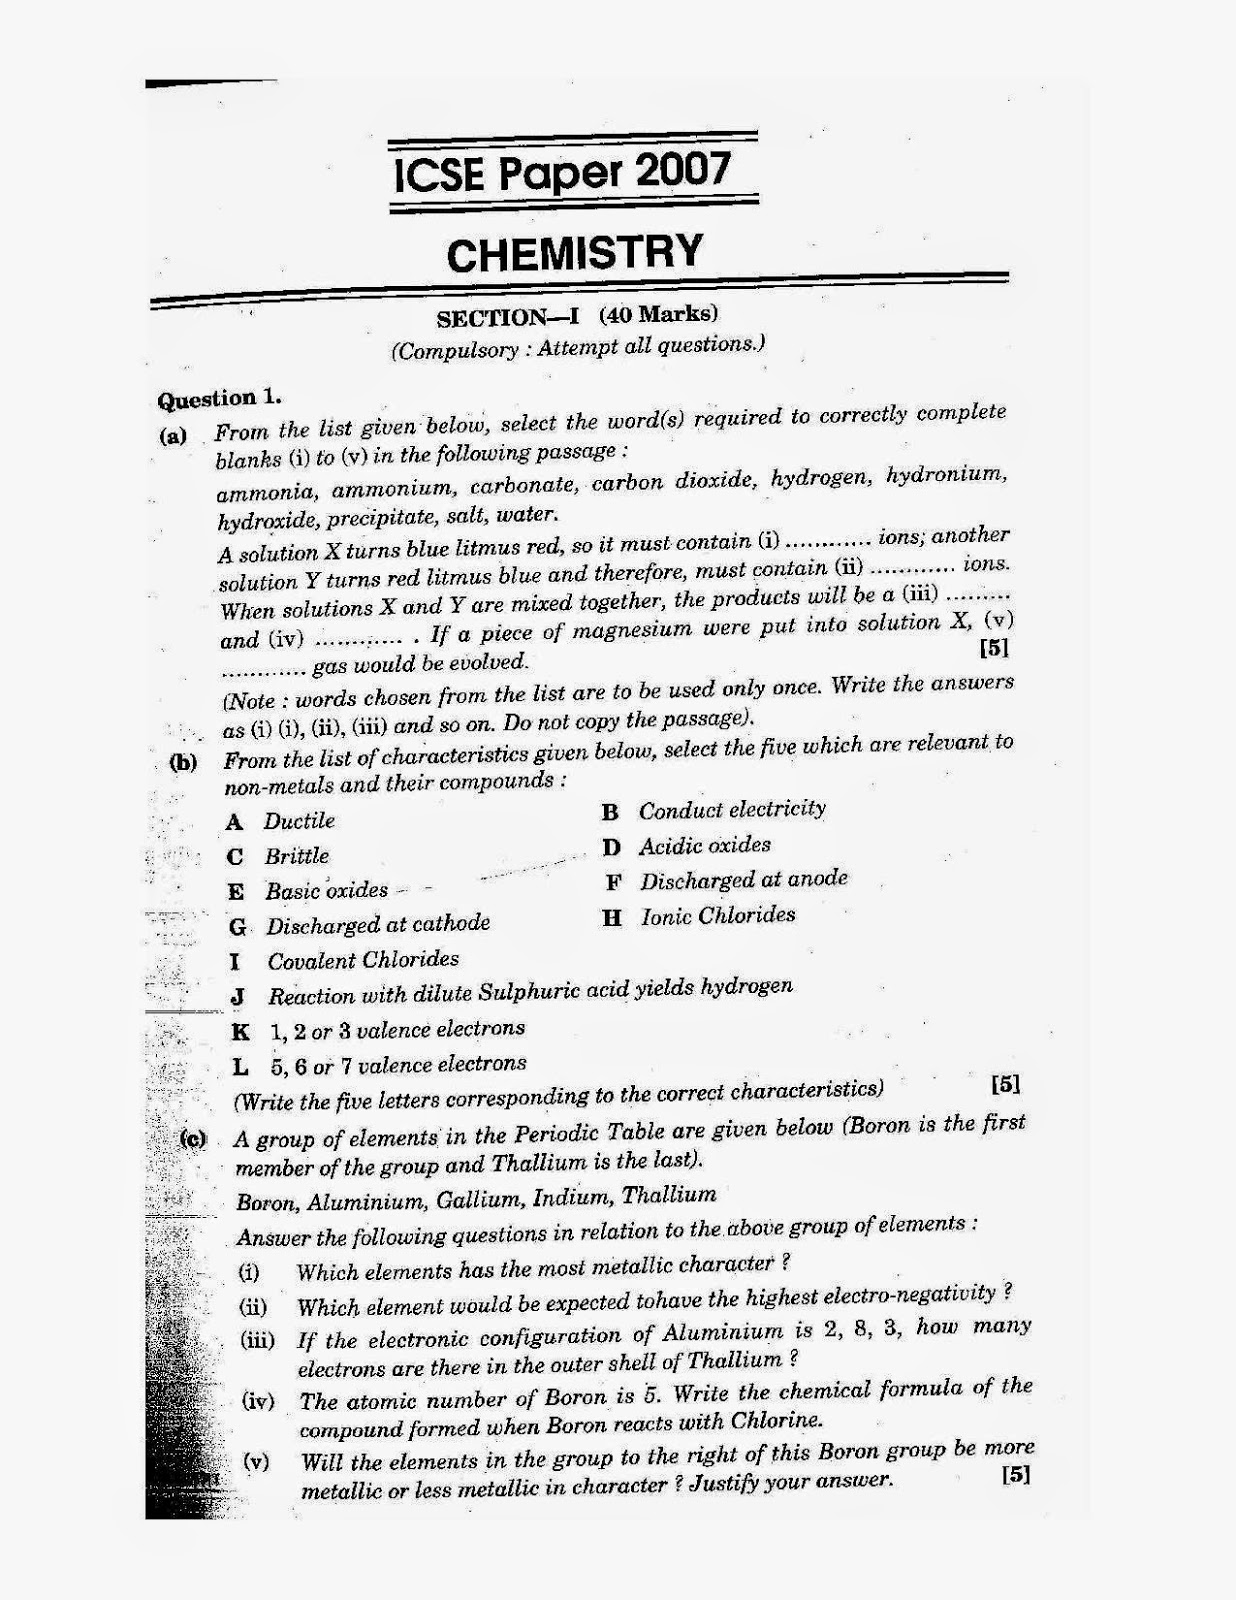 icse class 10th chemistry solved question paper 2007